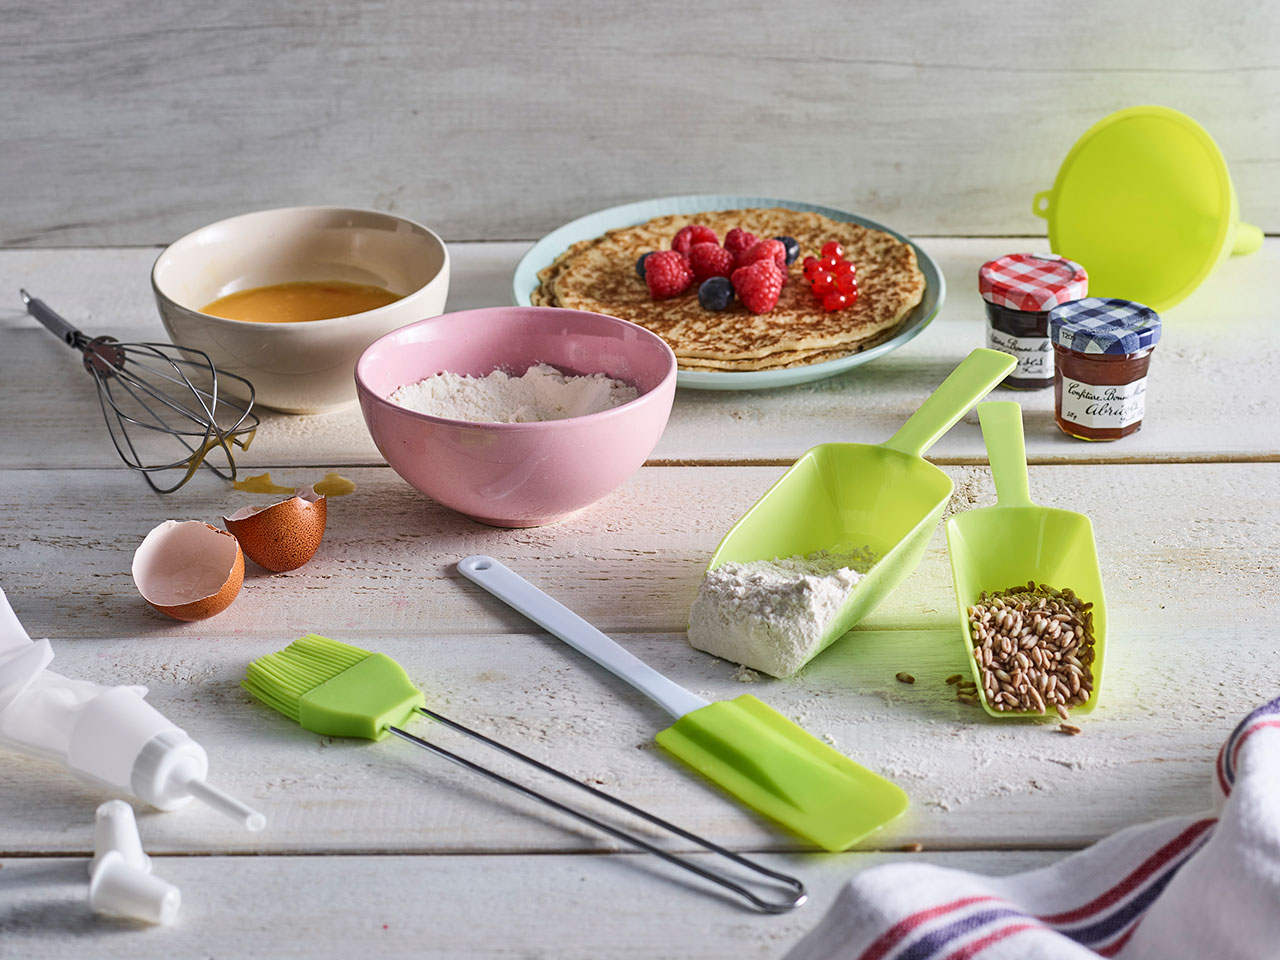 tools-and-gadgets-pastries-1